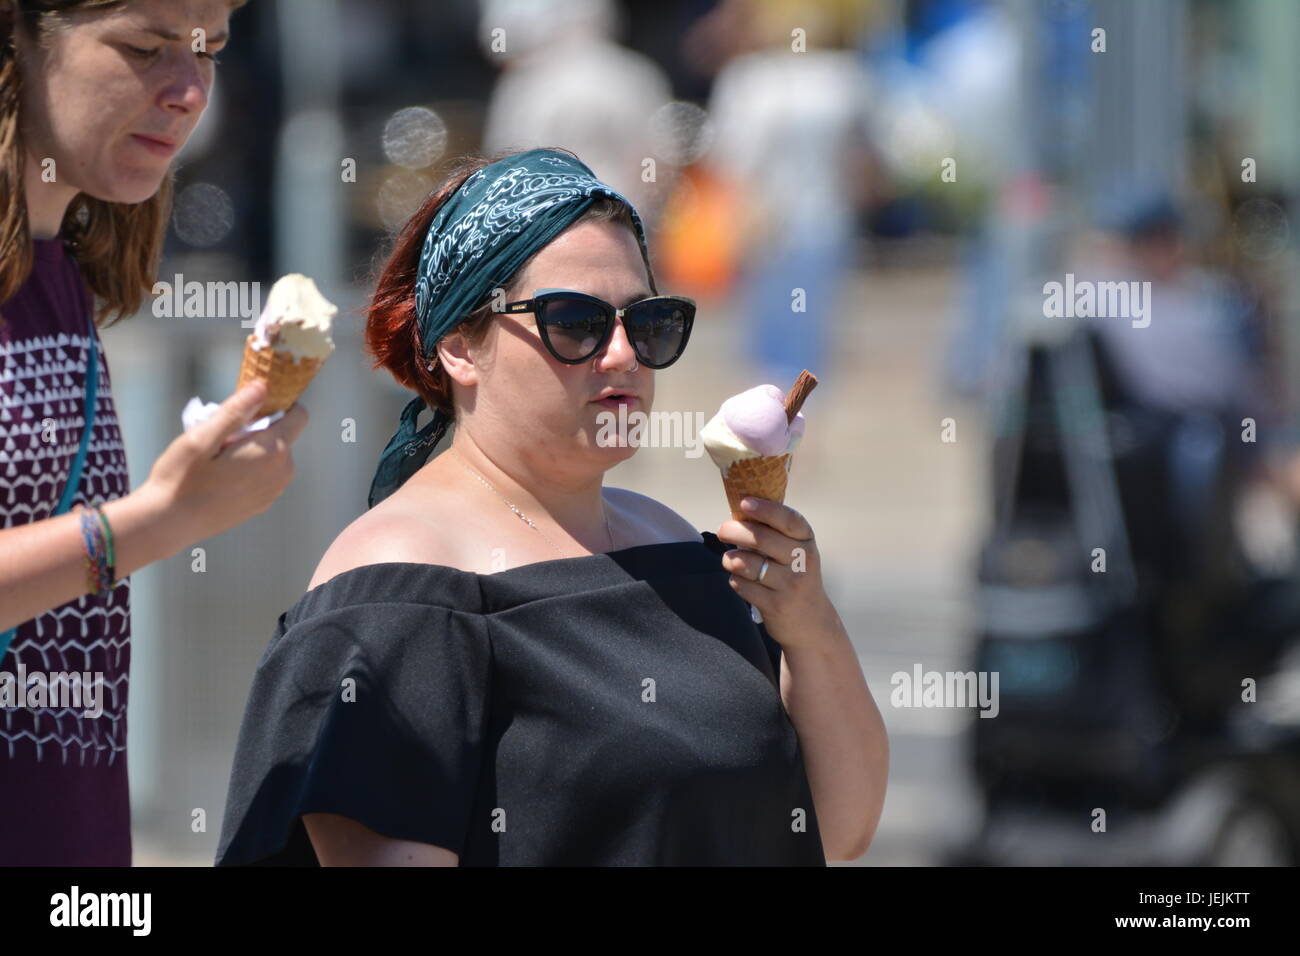 Woman eating a 99 ice cream cone on a hot day in Summer in the UK. - Stock Image